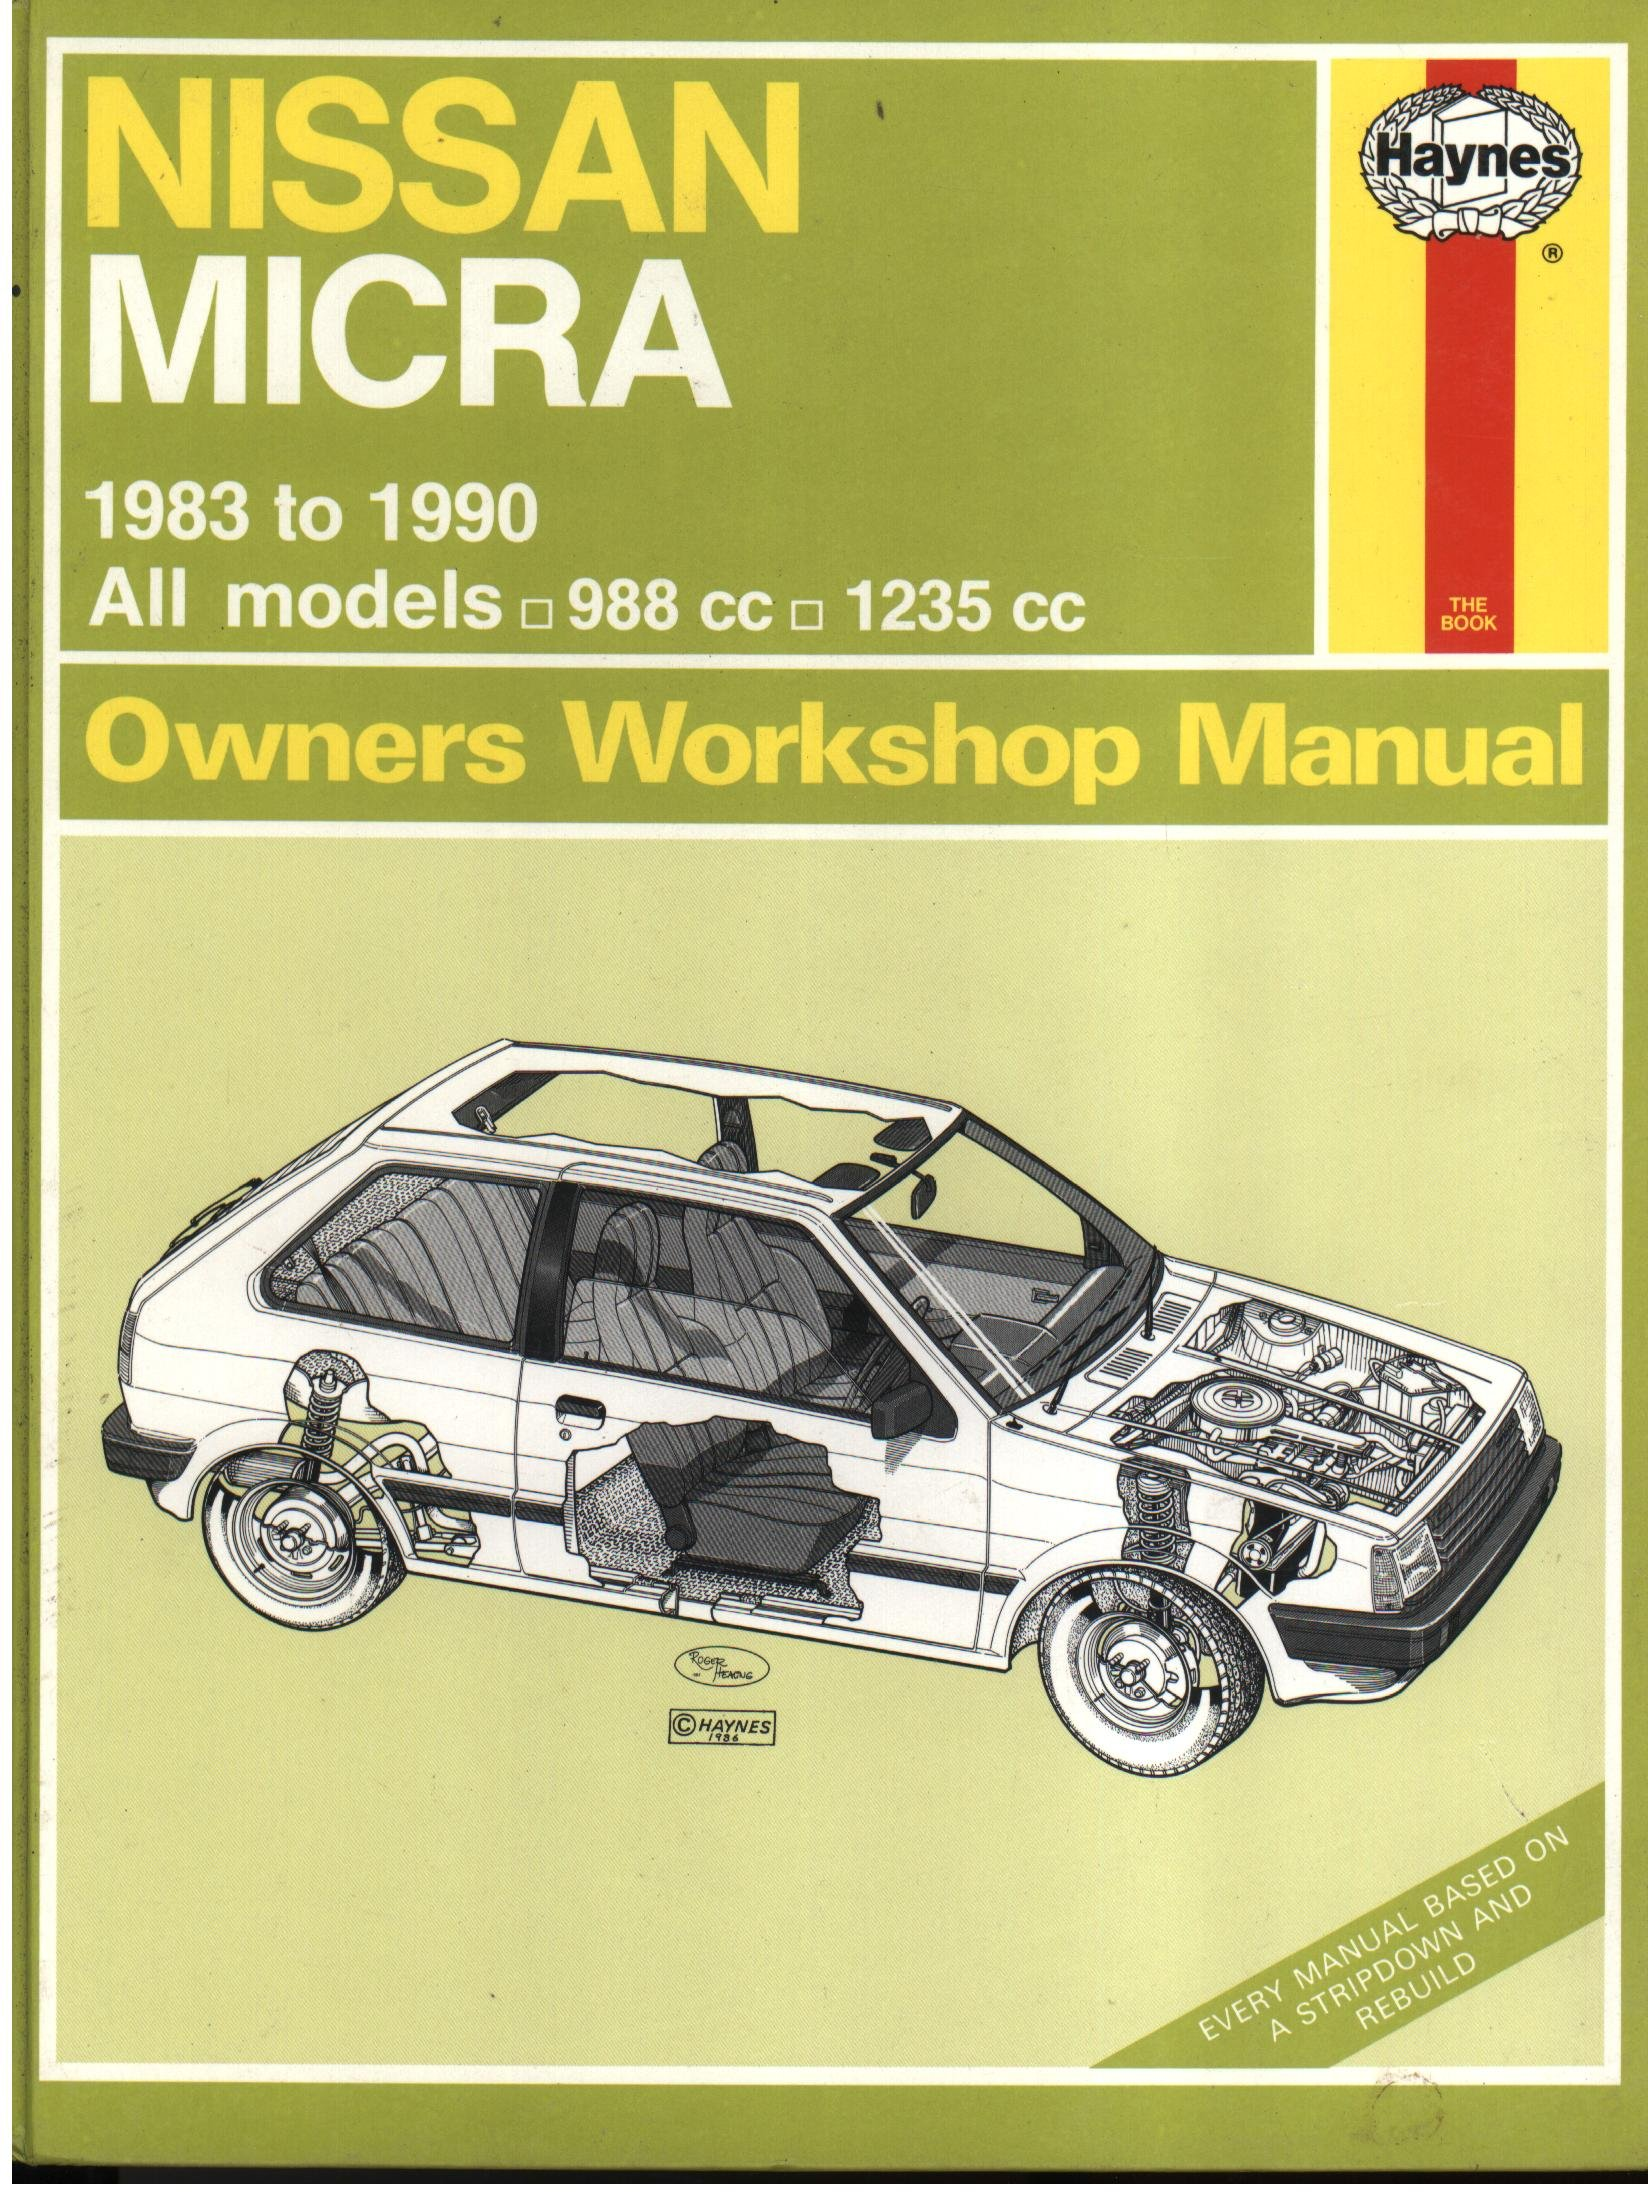 nissan micra owner s workshop manual amazon co uk colin brown rh amazon co uk Nissan Owners Manual PDF 2003 Nissan Maxima Owners Manuals